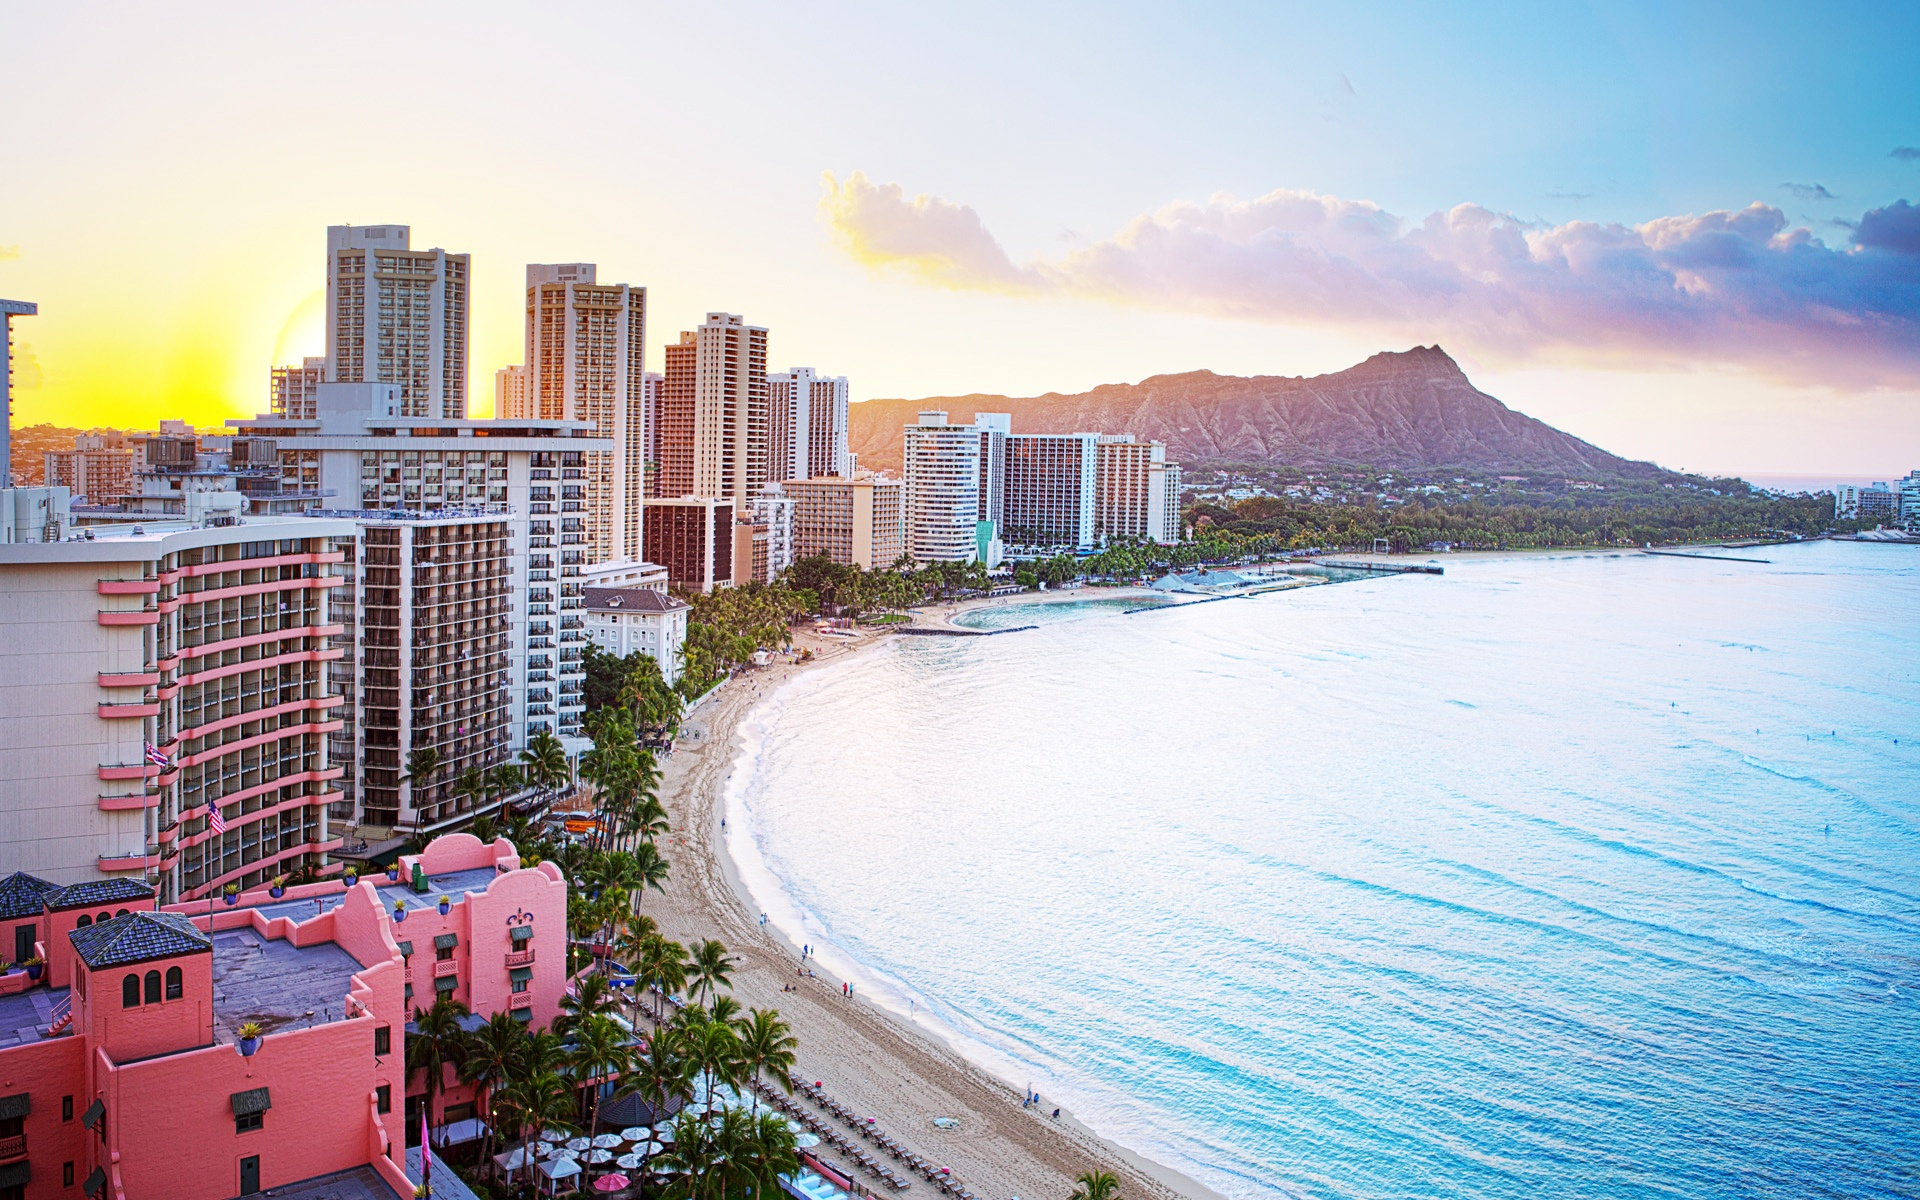 Waikiki Beach Hawai 2540 Wallpapers and Stock Photos 1920x1200